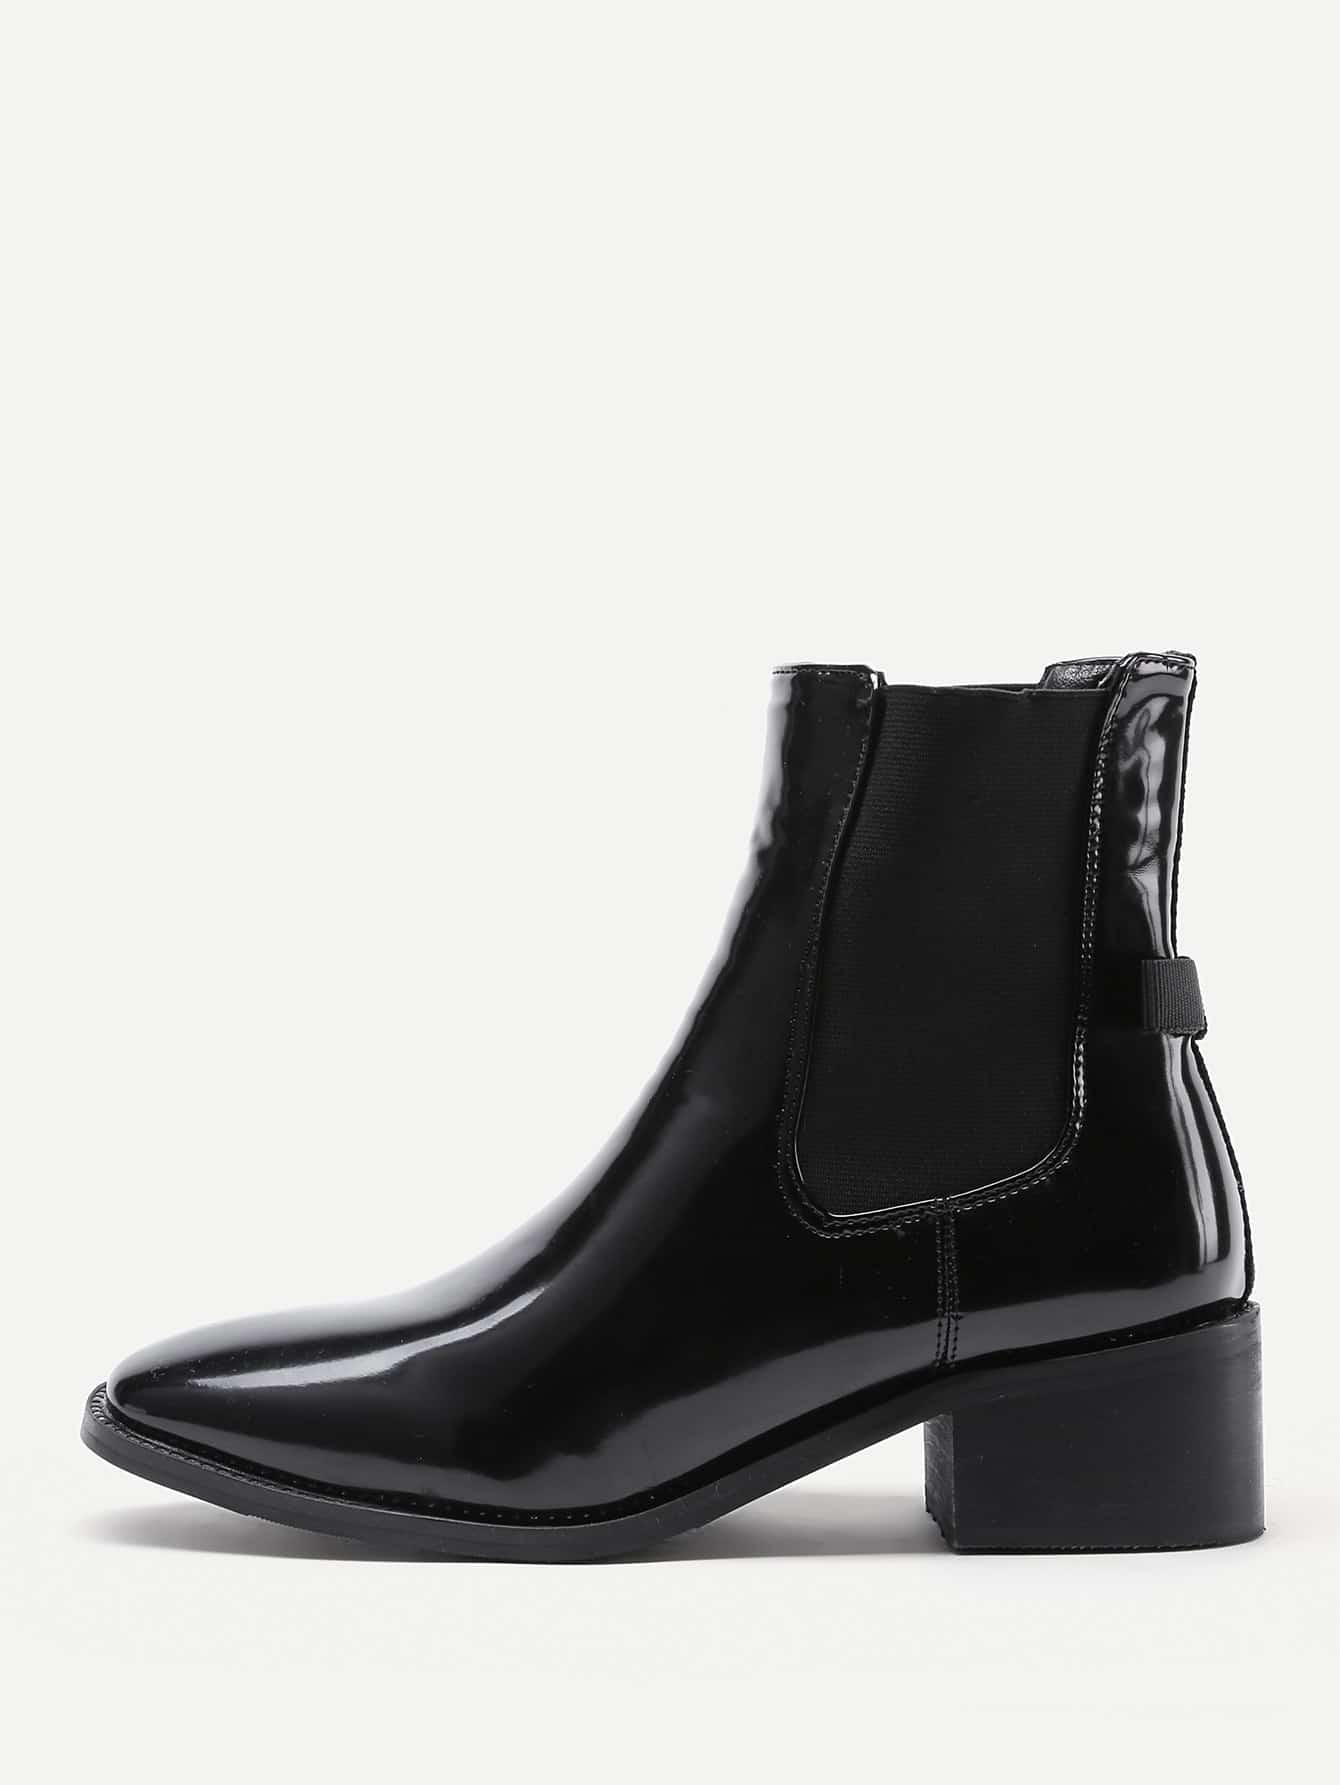 Almond Toe Patent Leather Ankle Boots hot new square toe women ankle boots black patent leather short booties high heel side zip luxury brand super star runway shoes